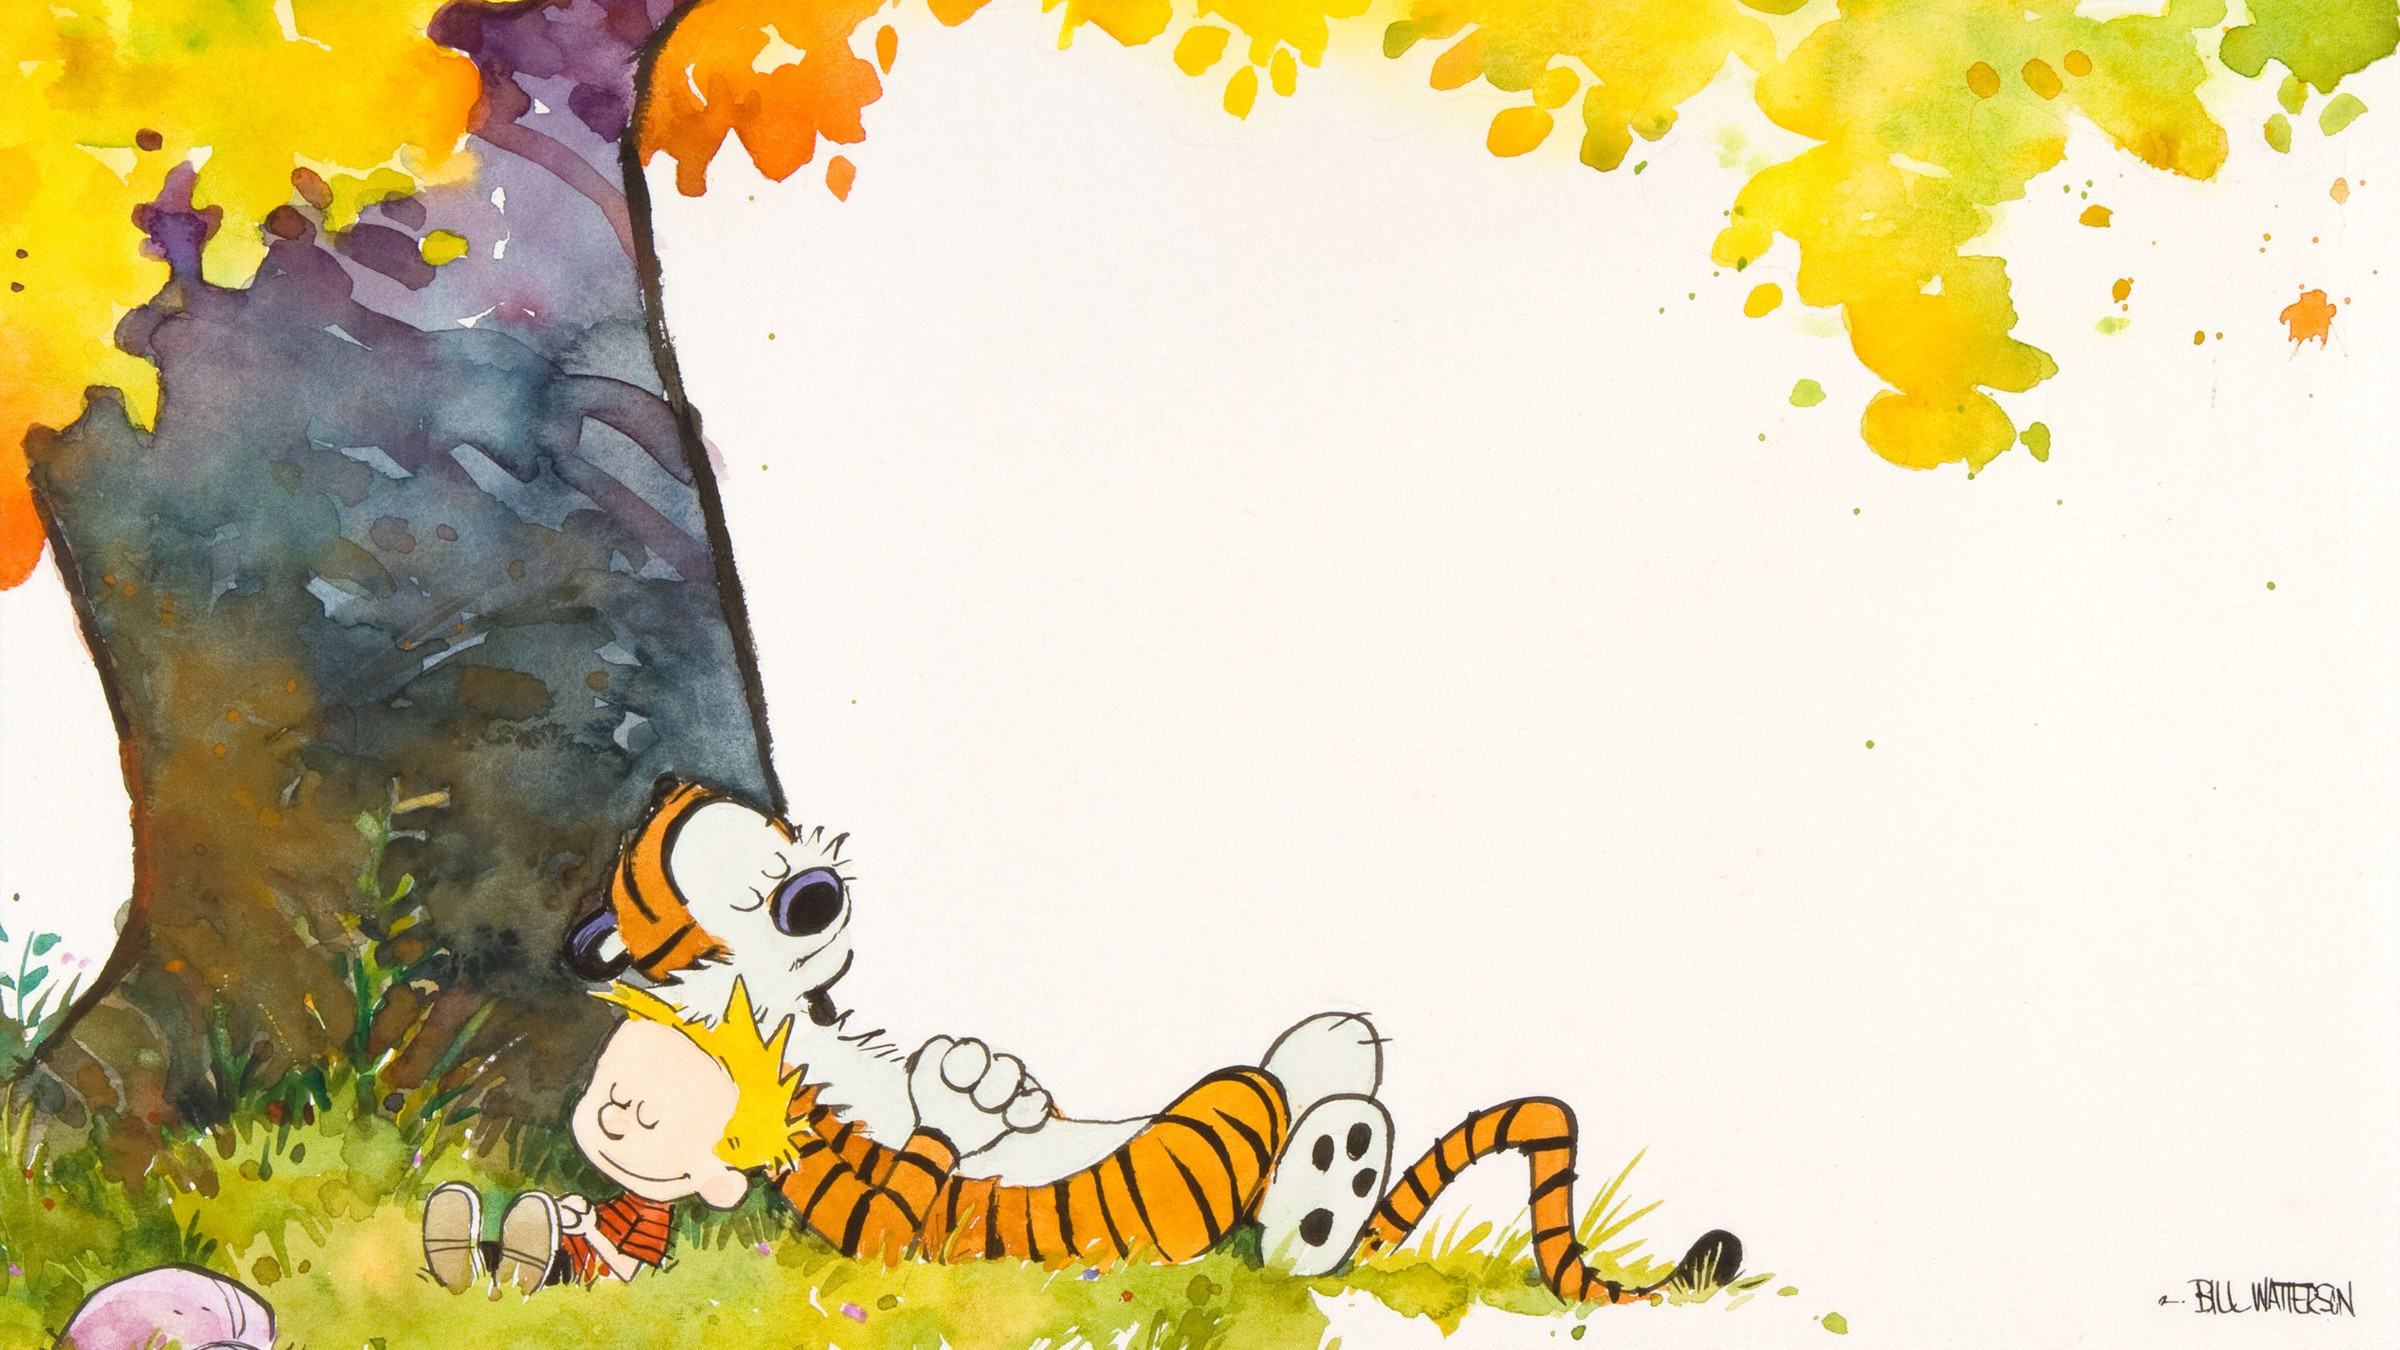 2400x1350 Calvin And Hobbes Wallpapers 1920×1080 (45 Wallpapers) – Adorable Wallpapers